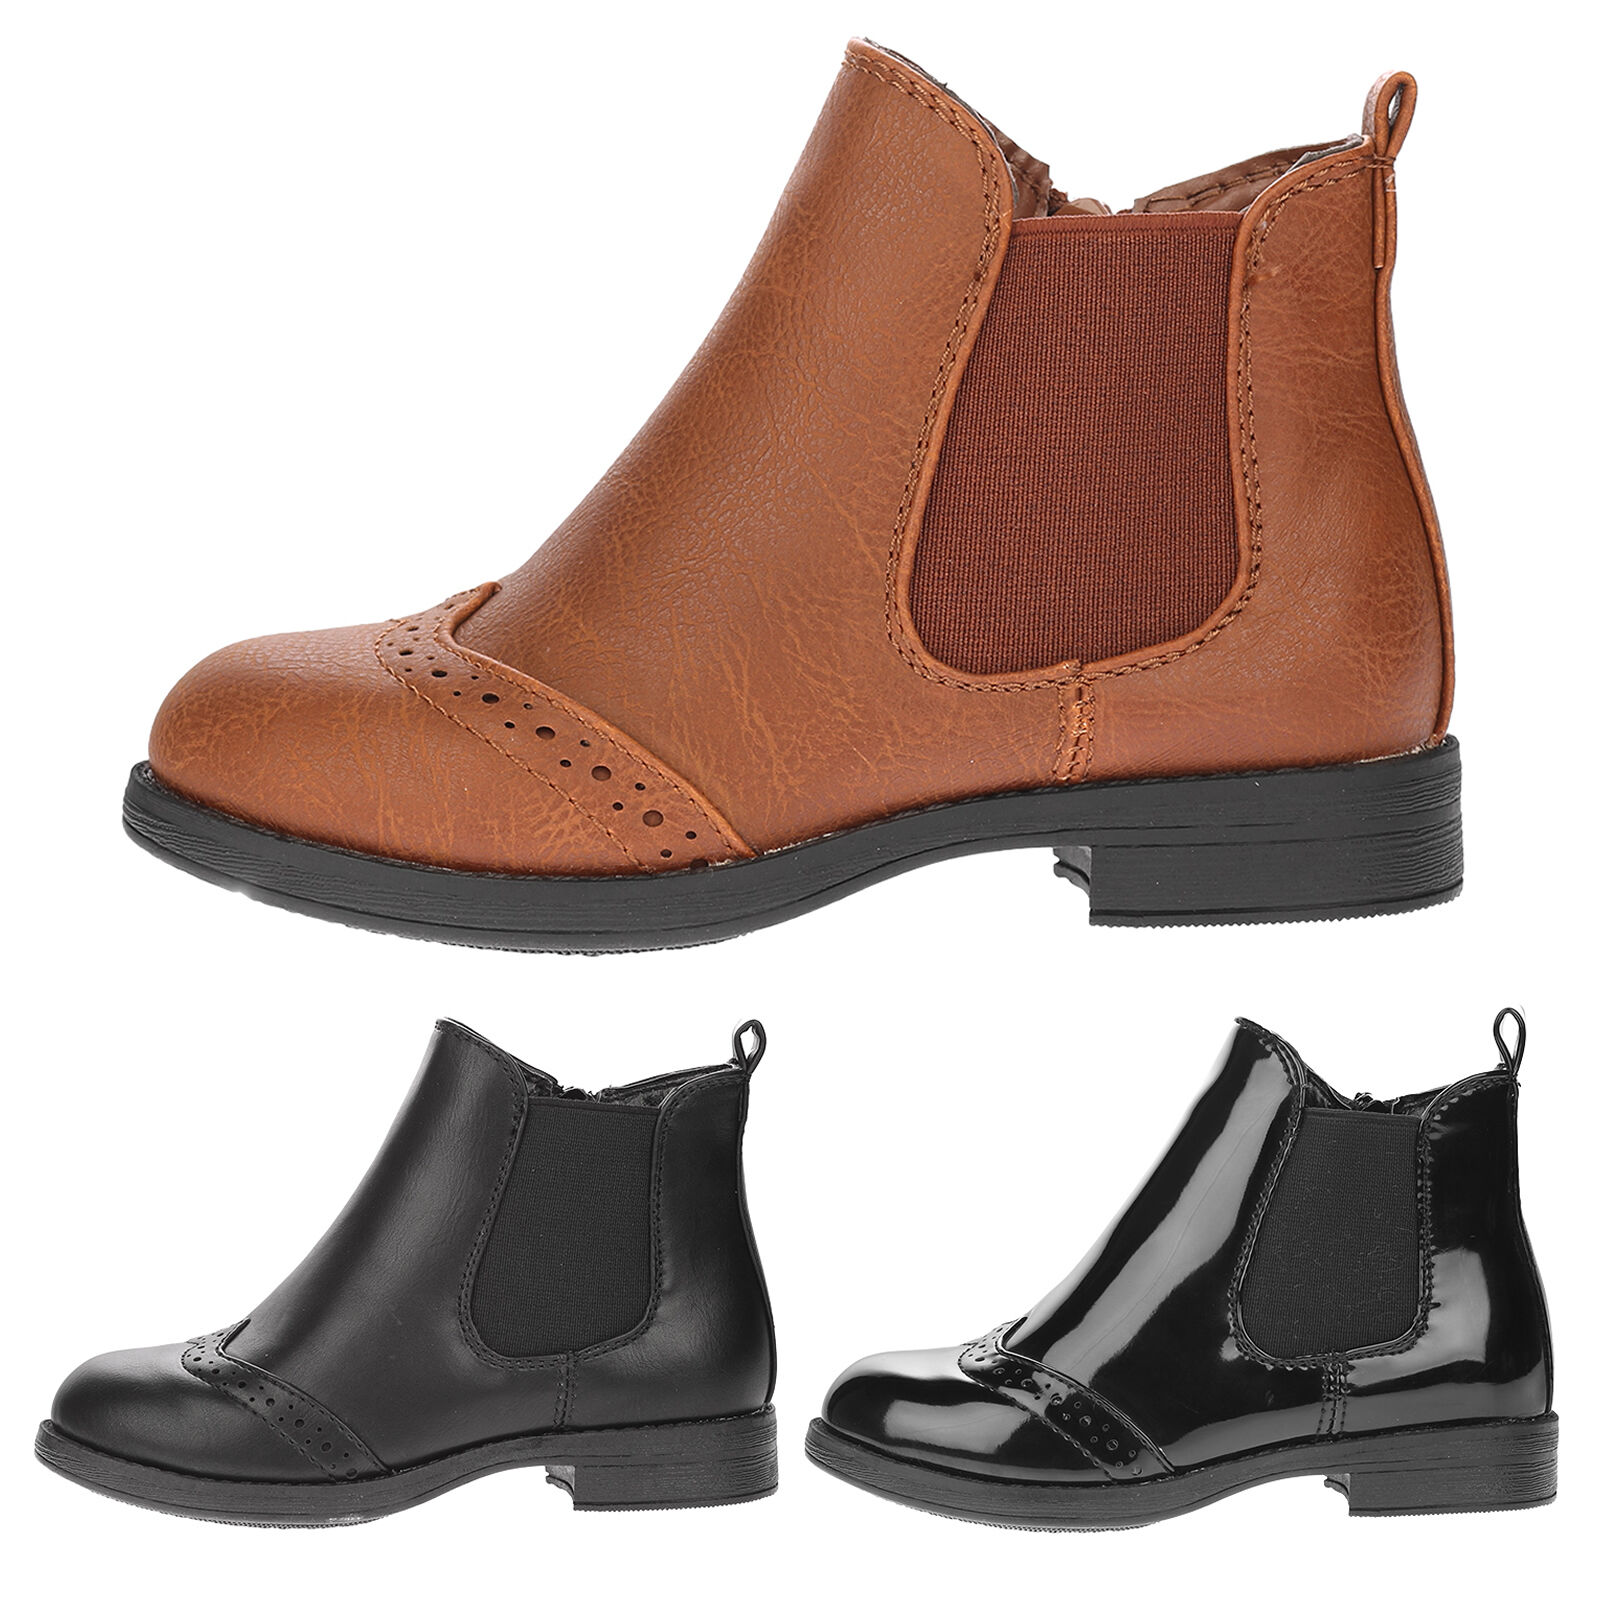 Childrens Shoes From Spain Sale